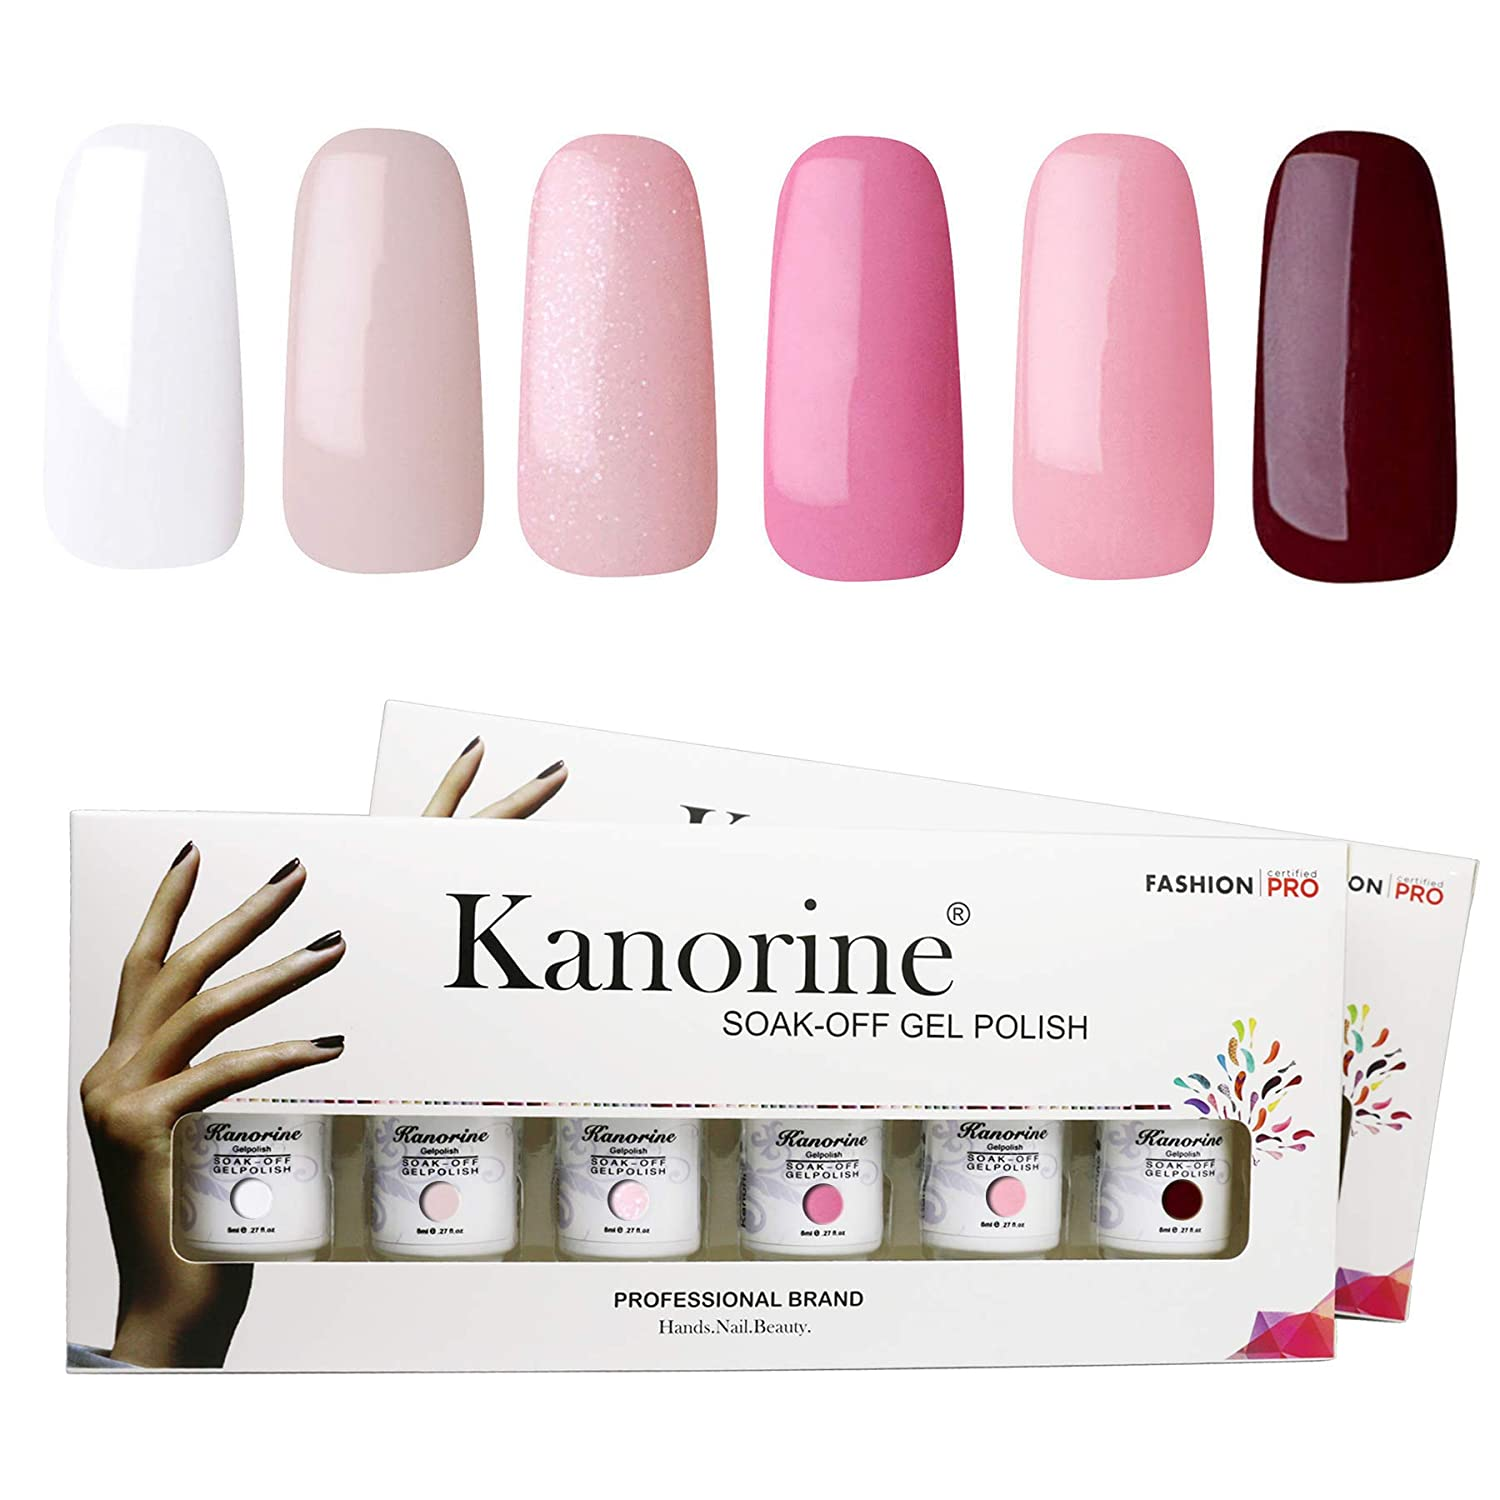 KANORINE Nail Gel Polish Set(6pcs) Soak off UV/LED Gel Nail Polish Long-Lasting Gel Varnish Manicure Shiny Fashion Gift Set 8ml x6 (#10)